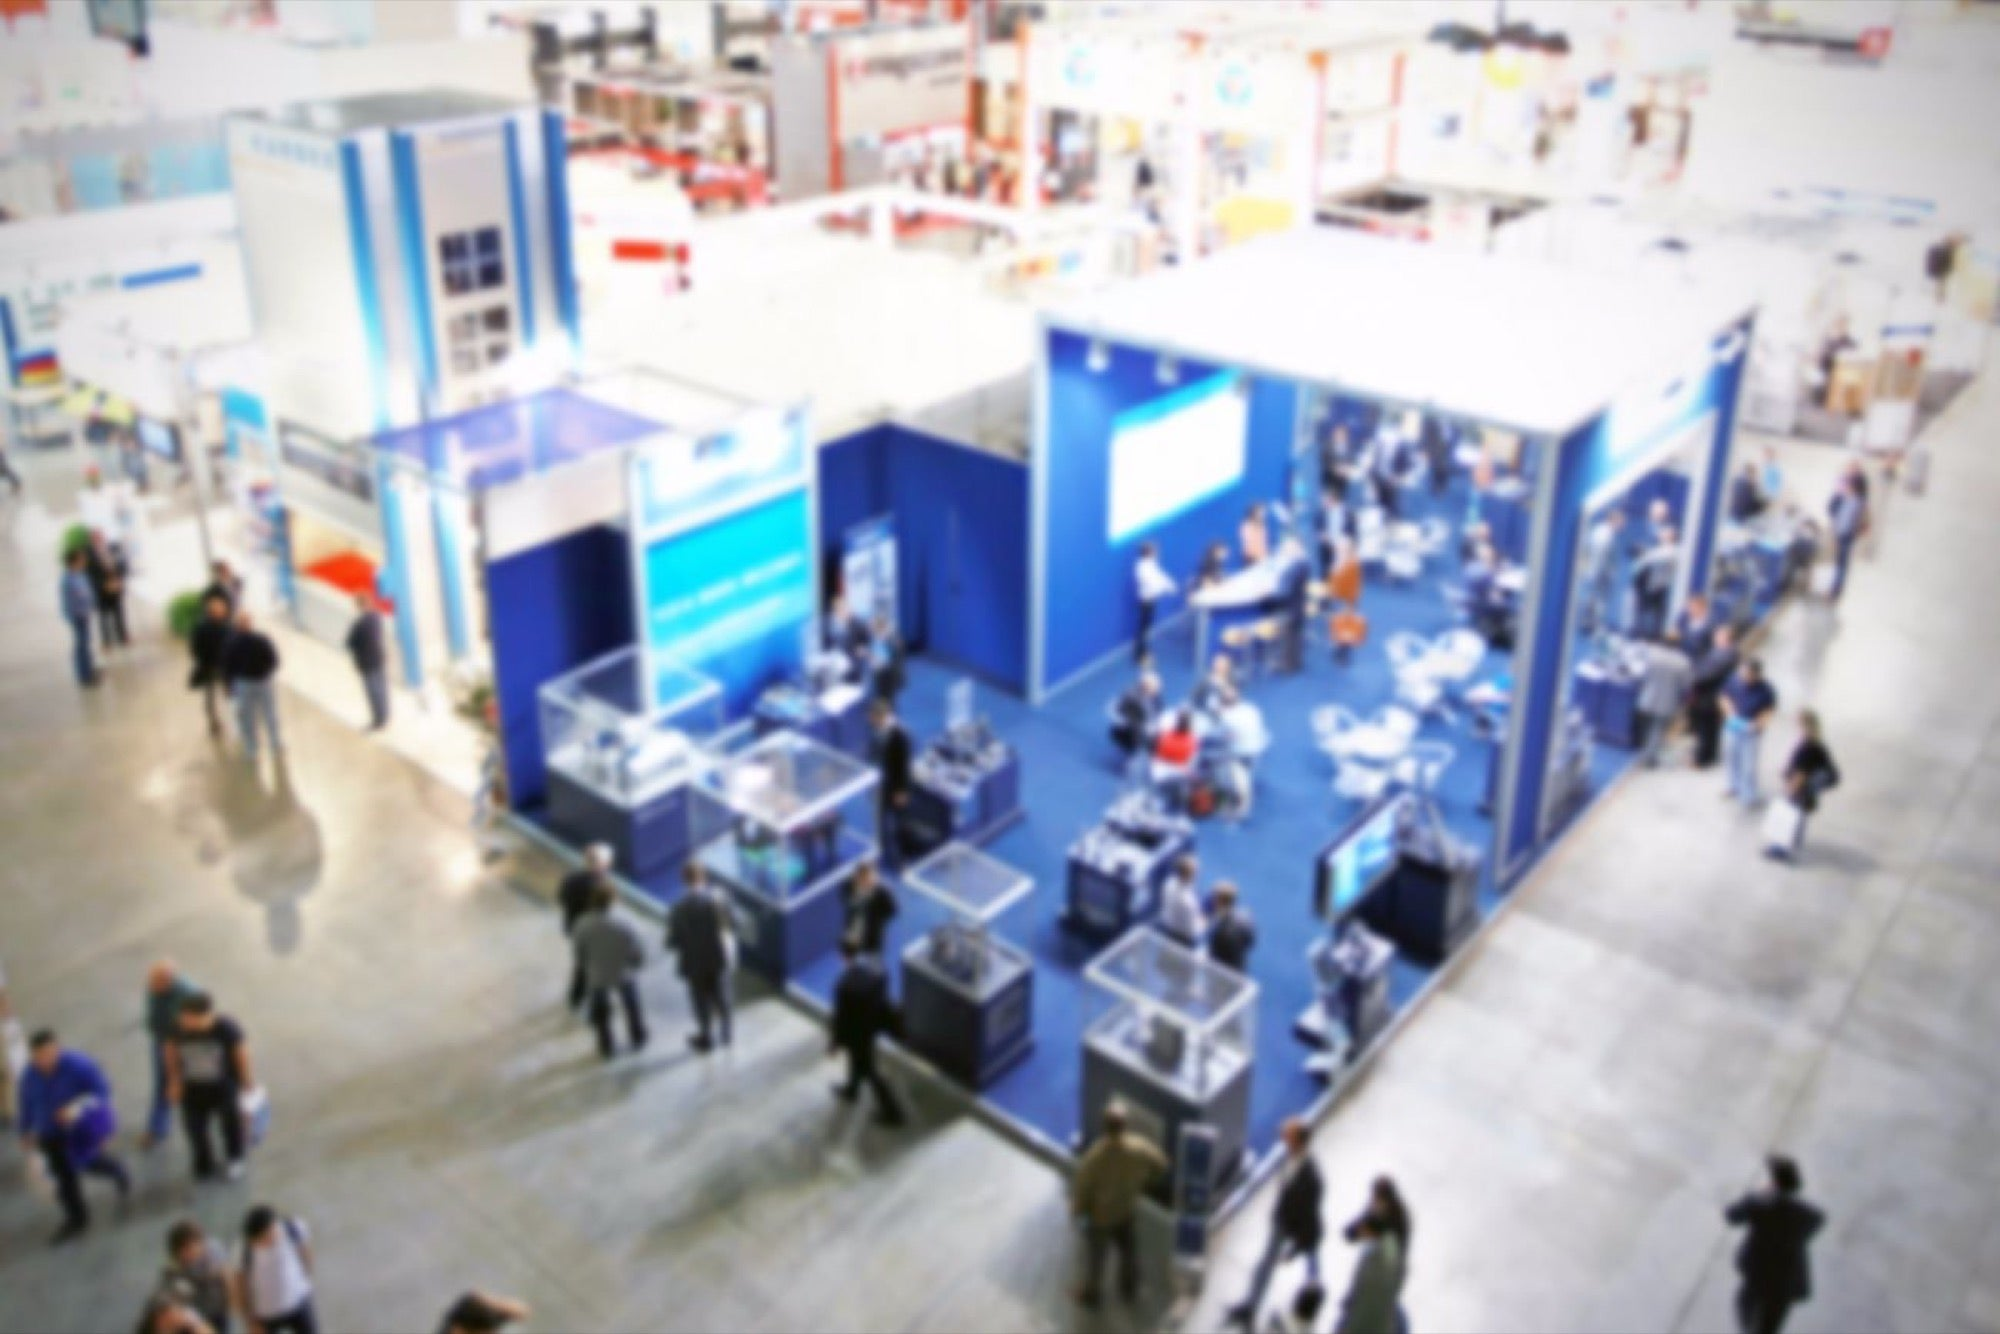 How to Effectively Attract Customers at the Exhibition